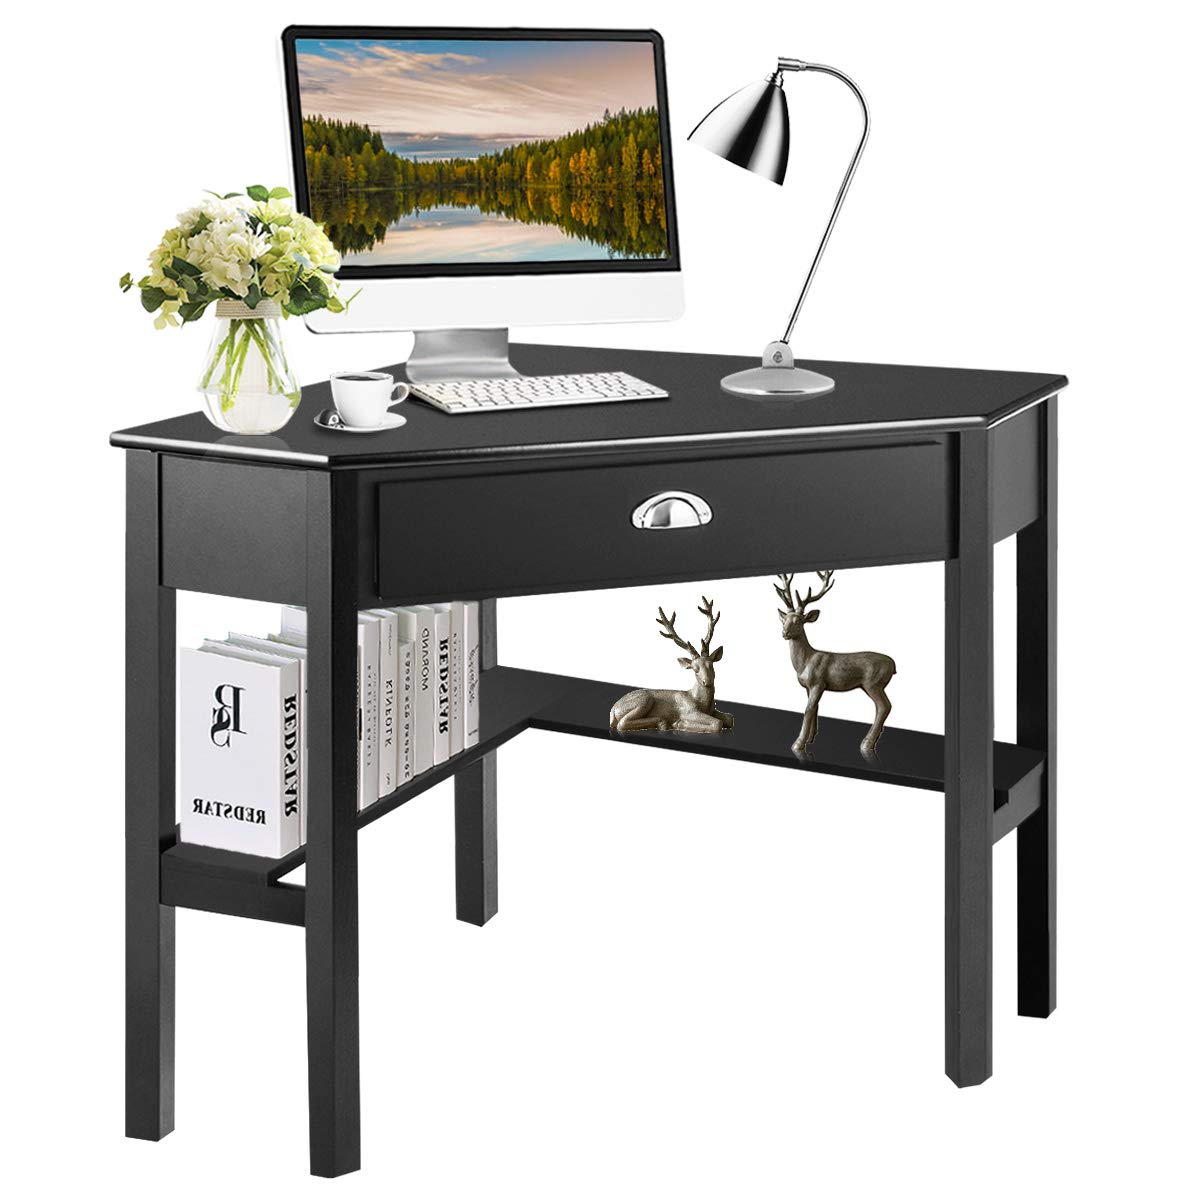 Small White Corner Desk For Many Functions